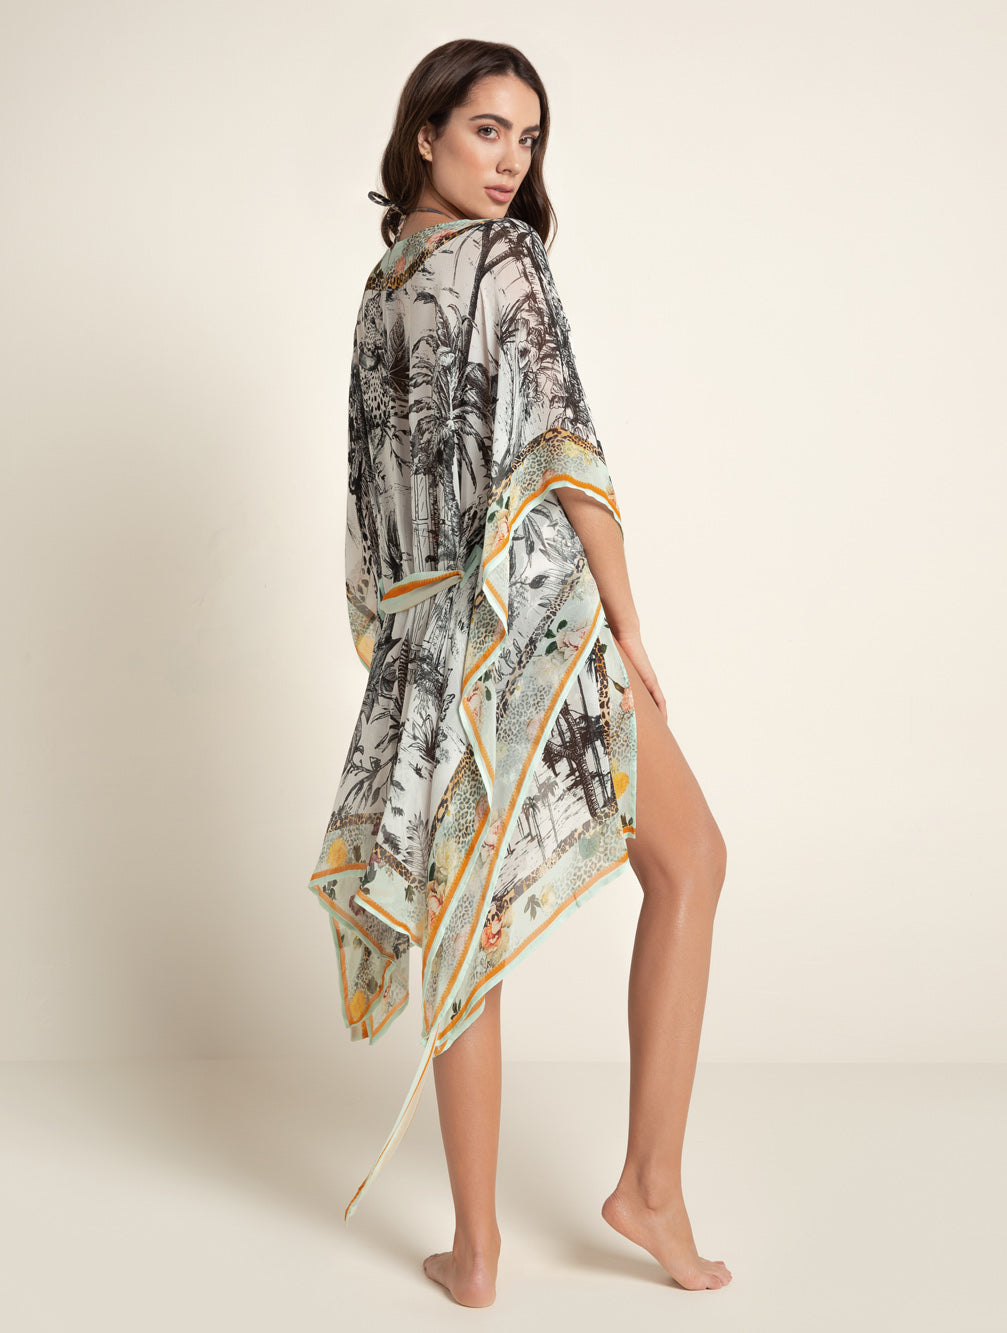 CORA KAFTAN - Kaia London